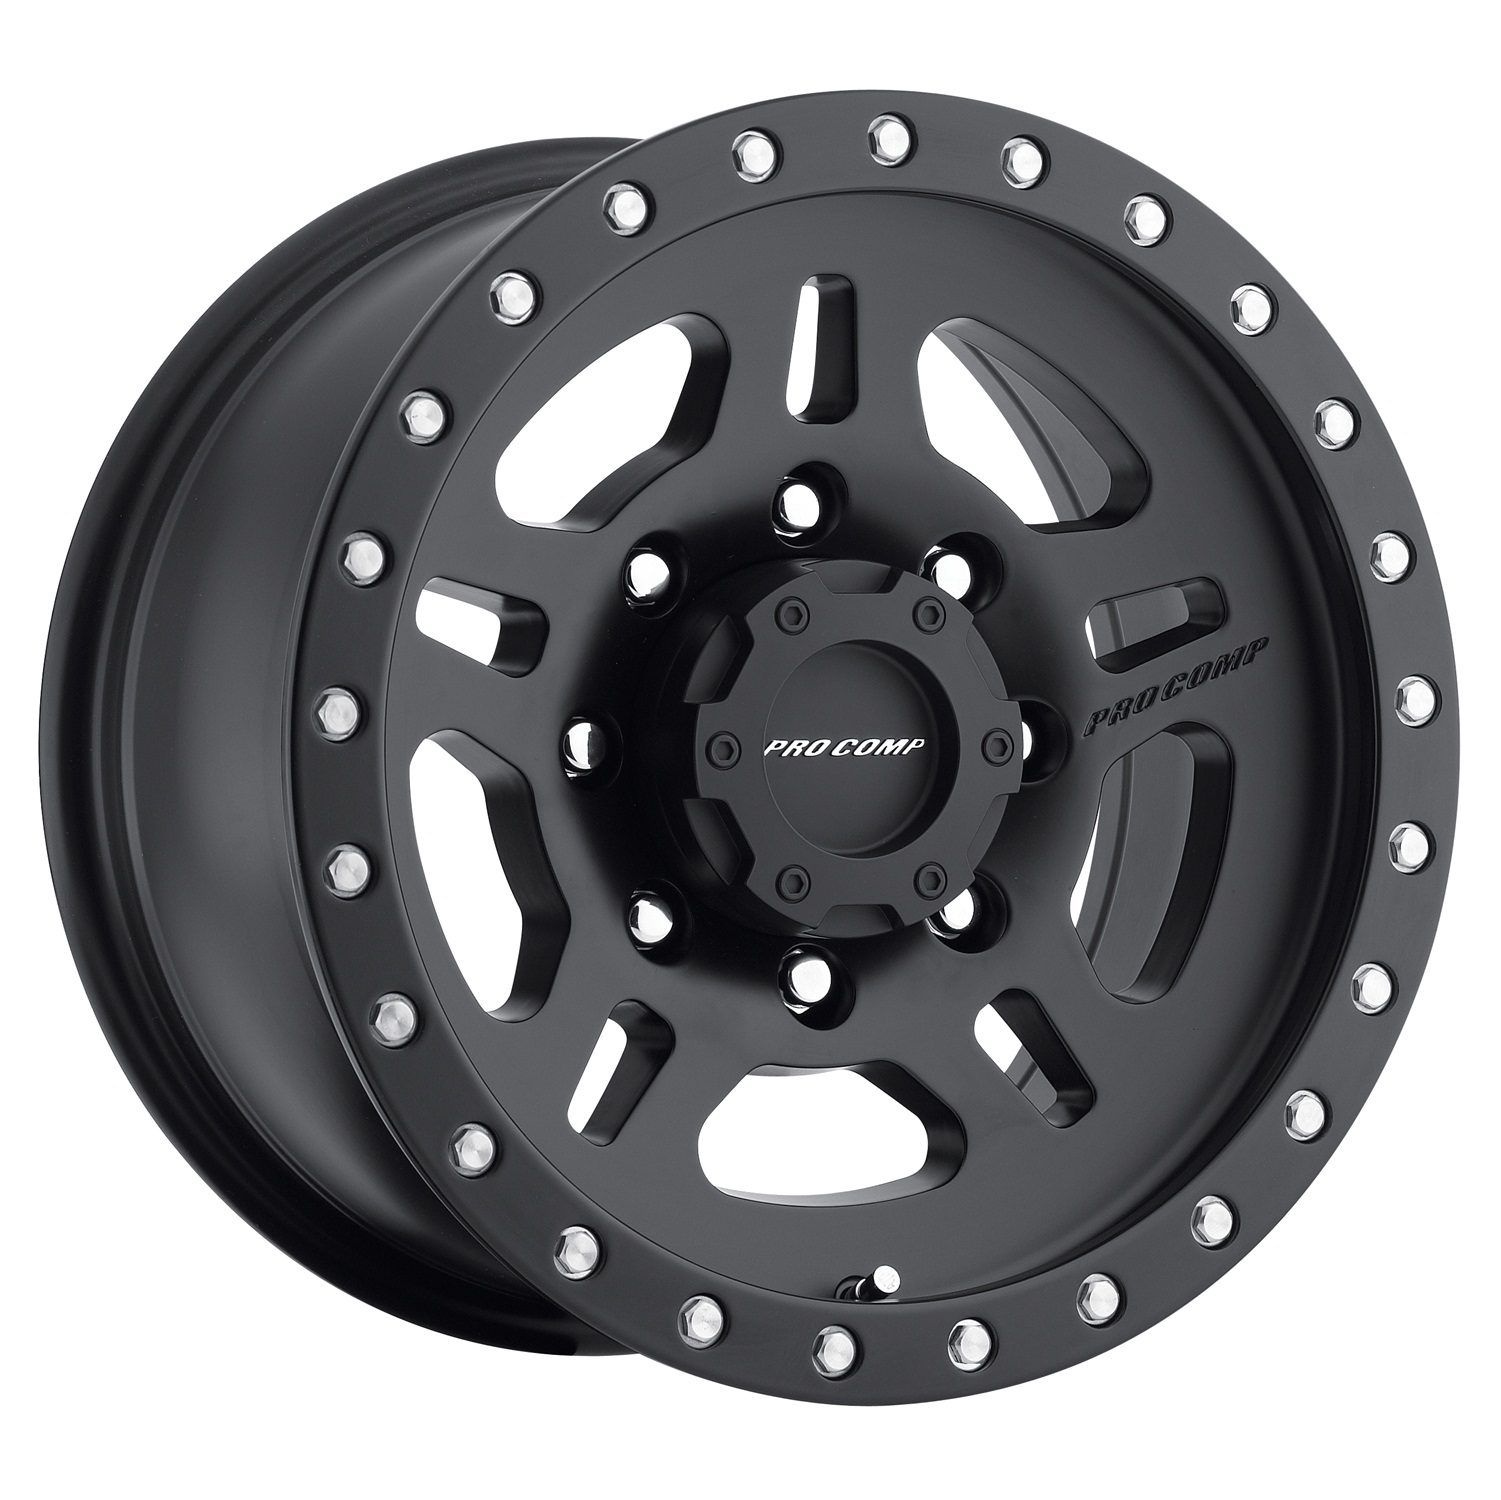 Pro Comp Alloy 5029-78573 Xtreme Alloys Series 5029 Black Finish